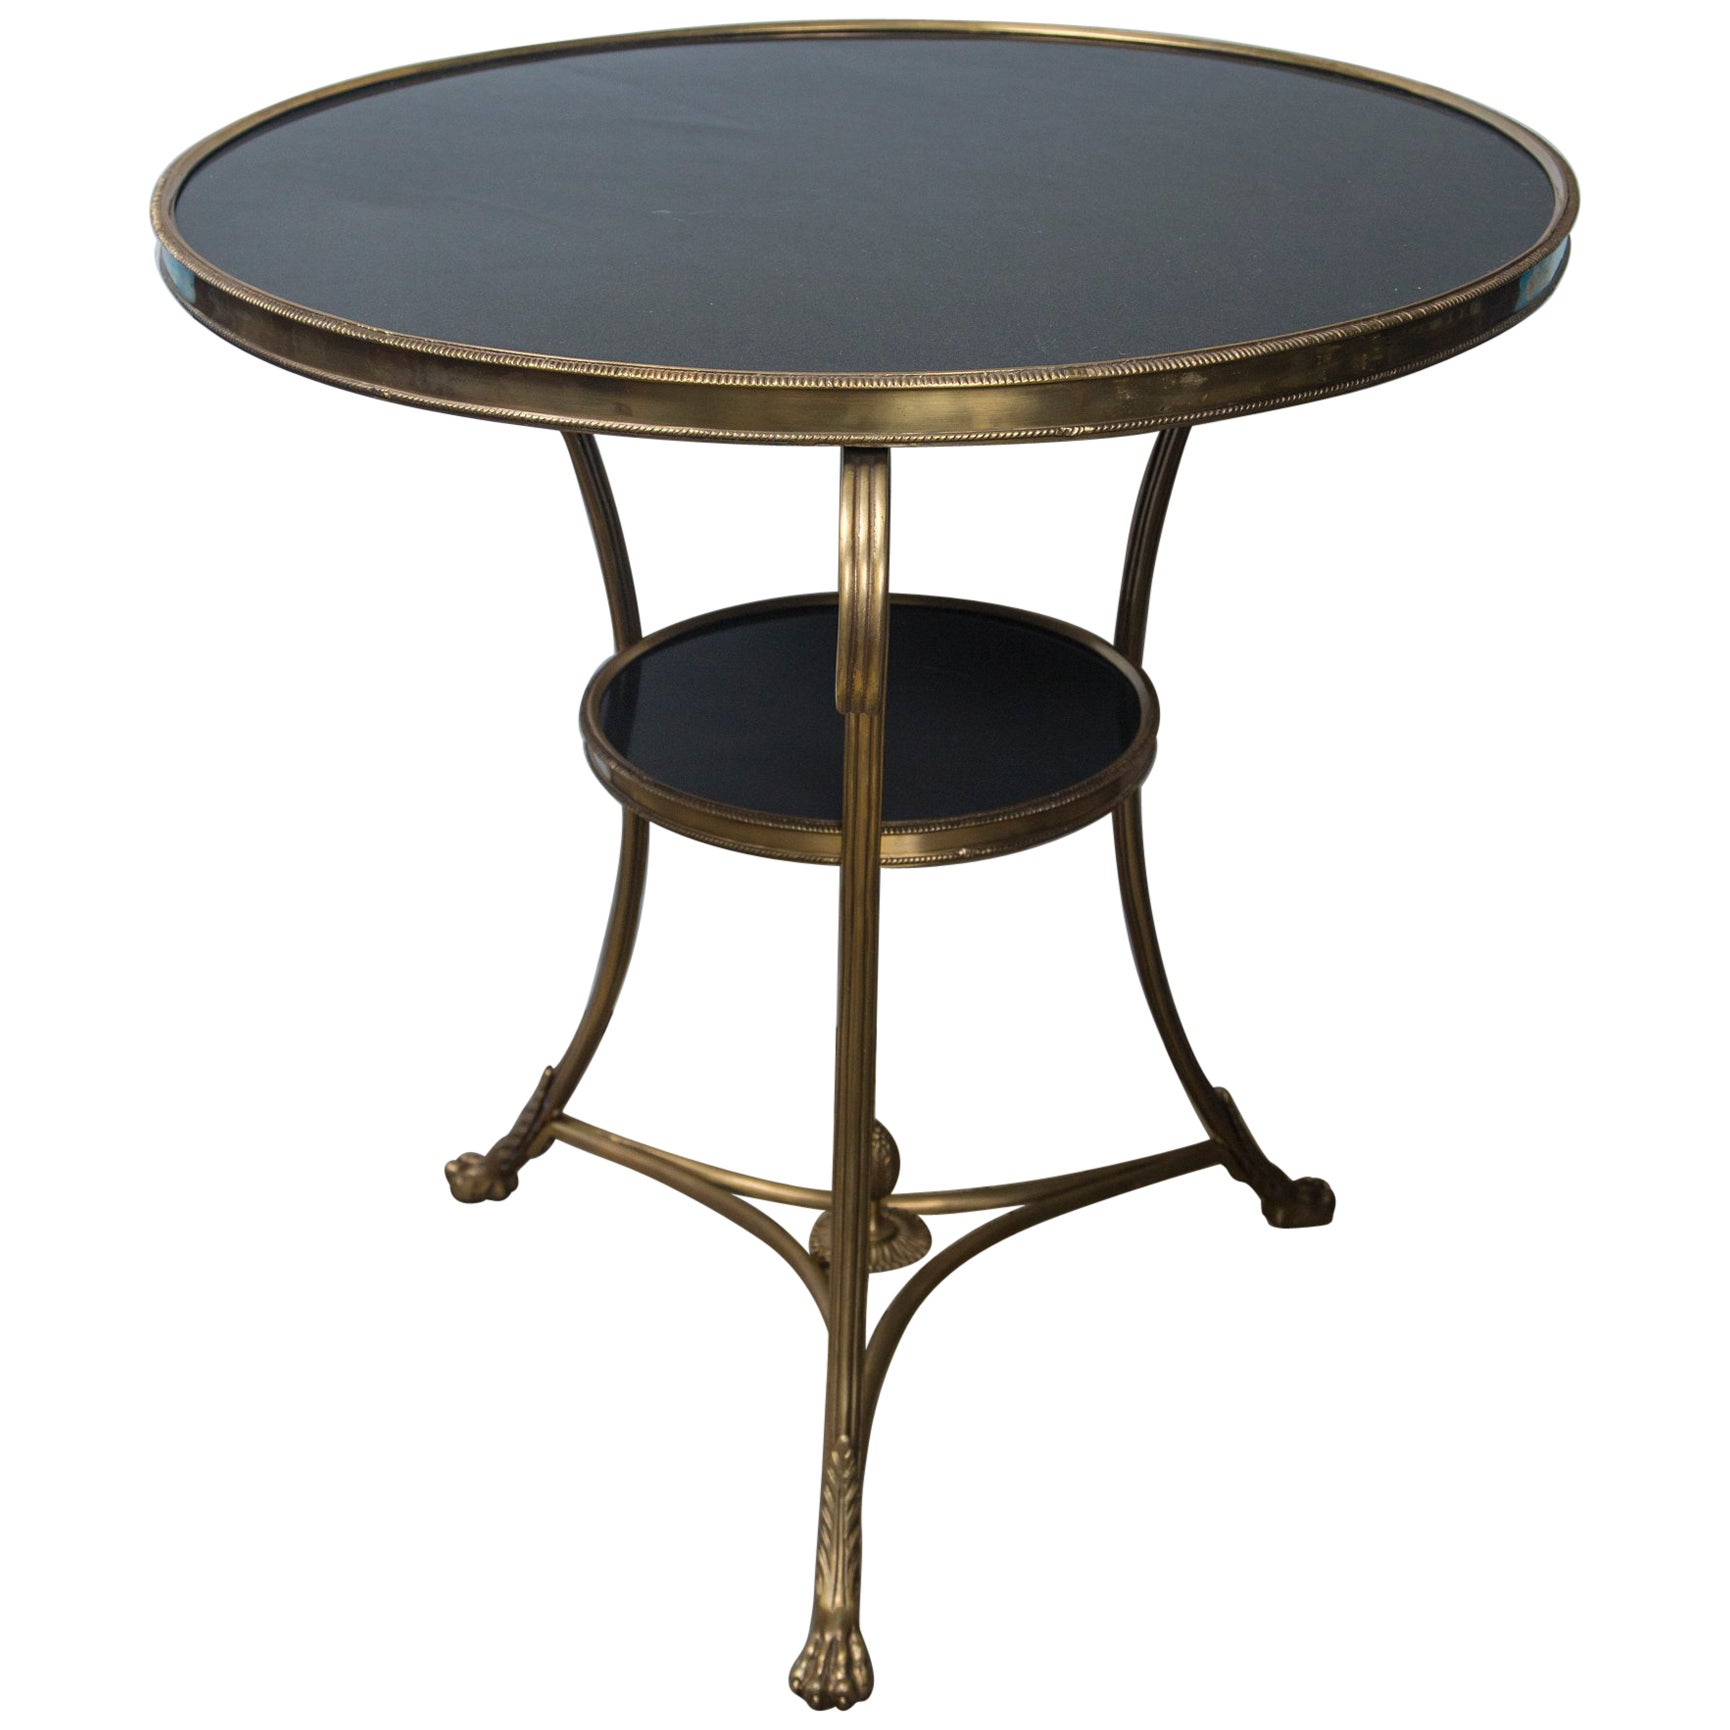 Two-Tier Marble Topped  Brass Gueridon